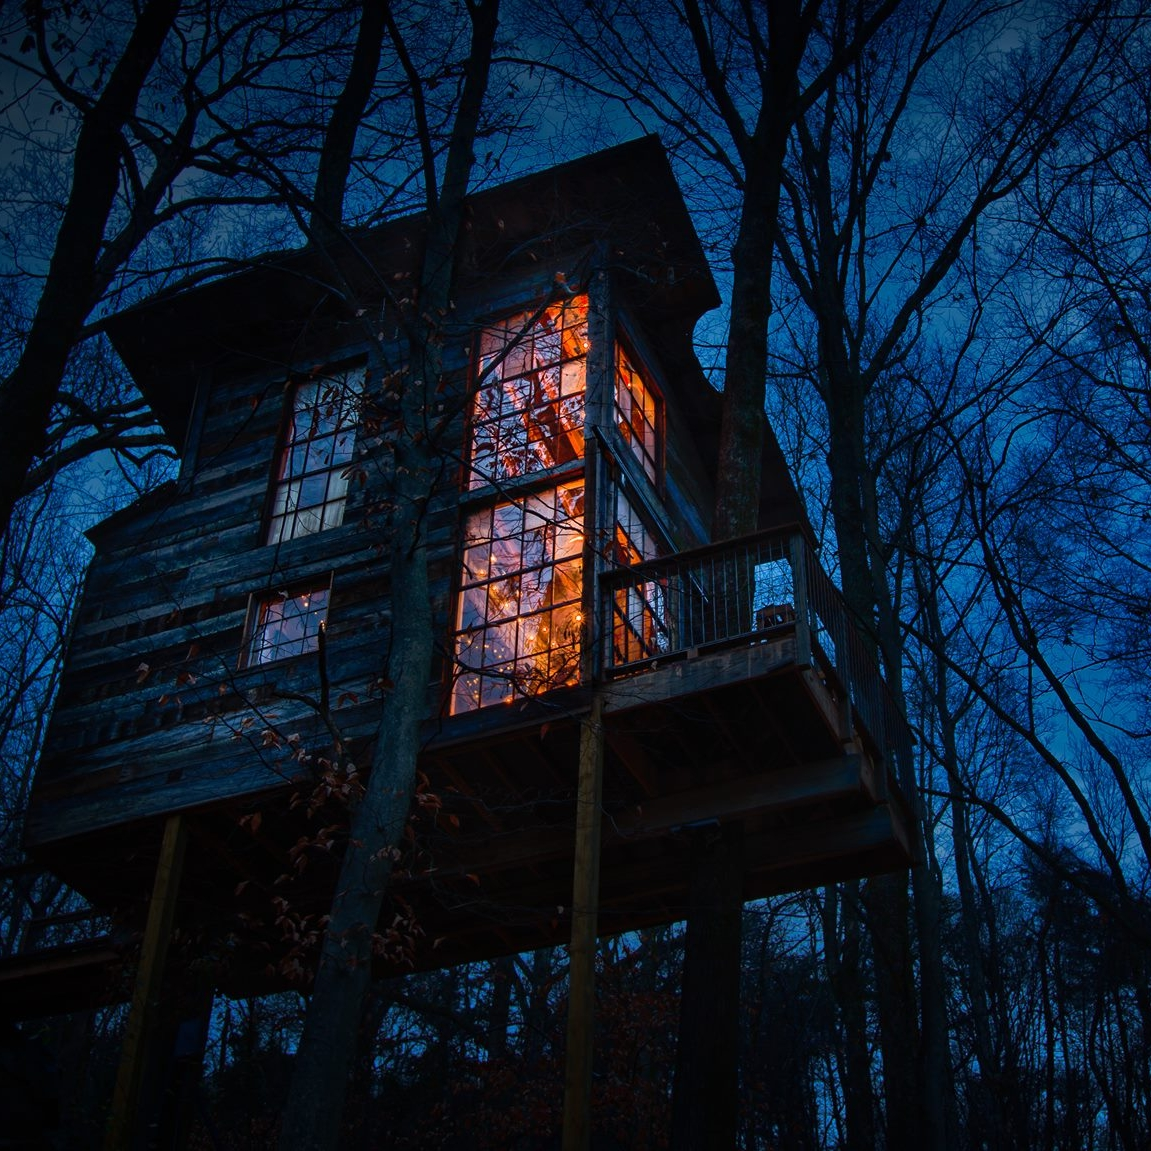 treehouse at night.jpg